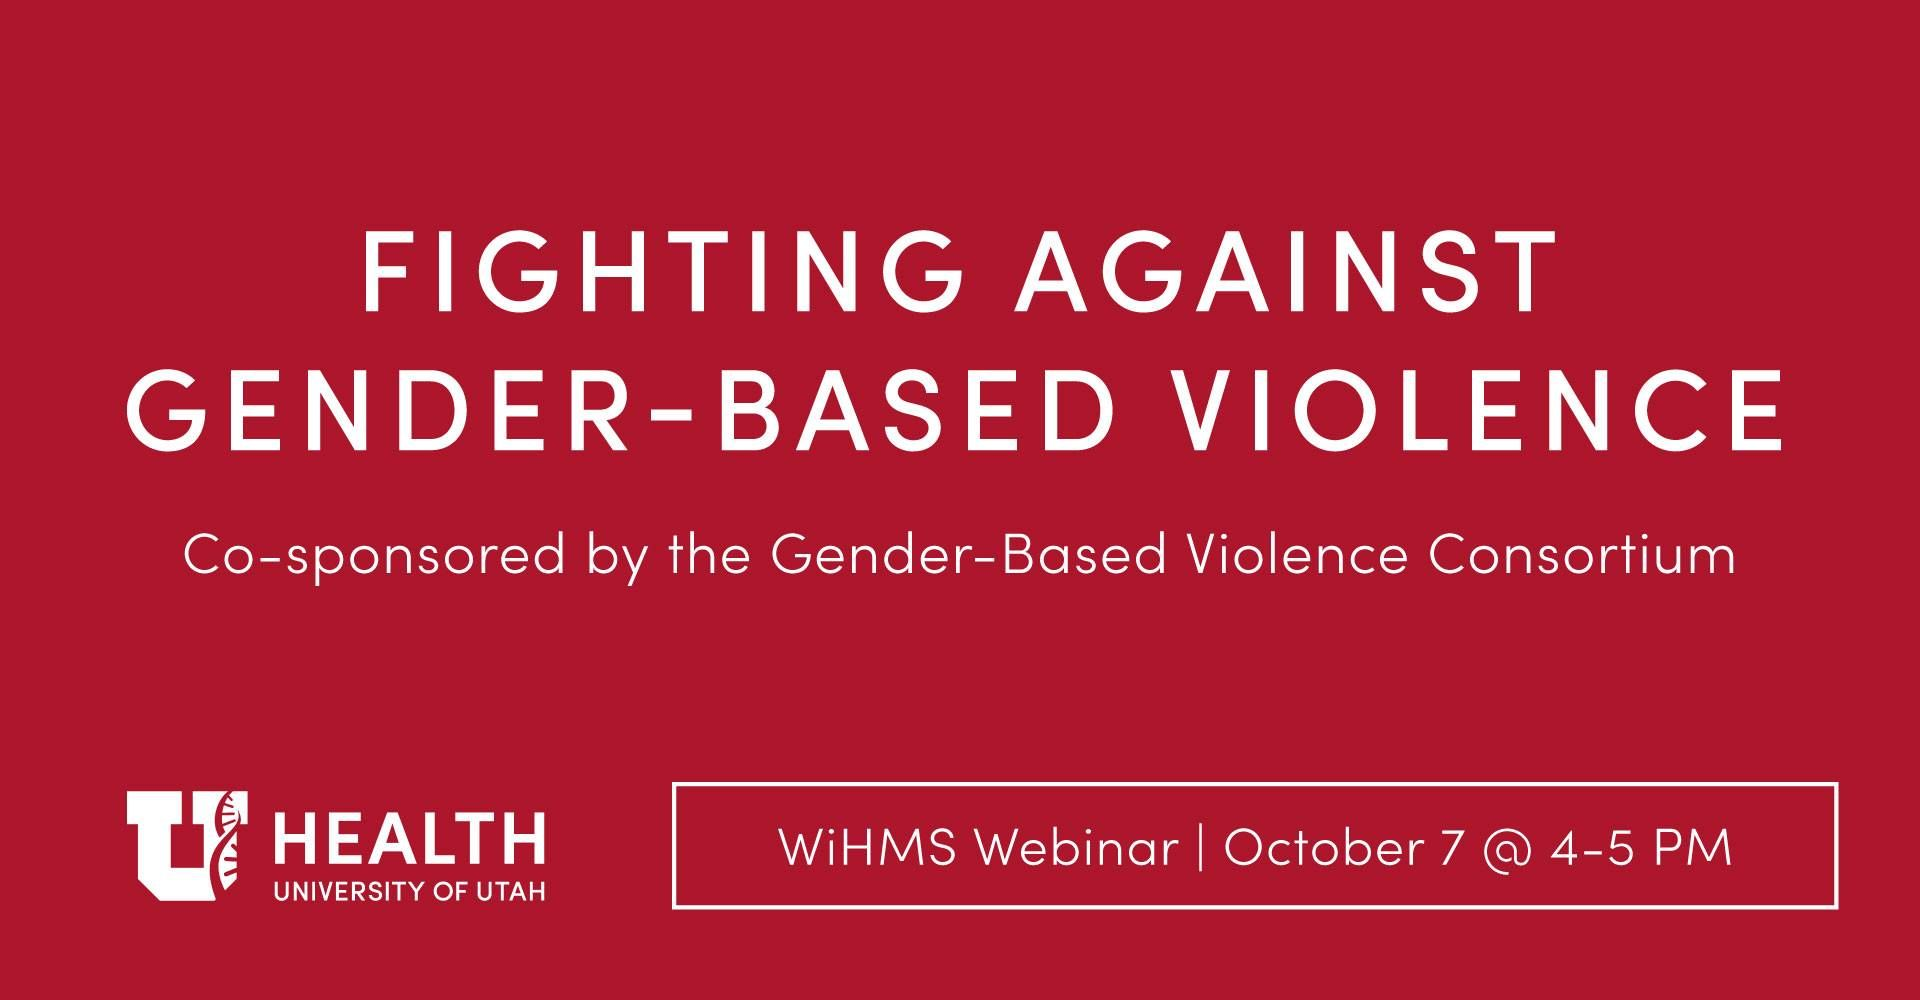 WEBINAR: Fighting Gender-Based Violence